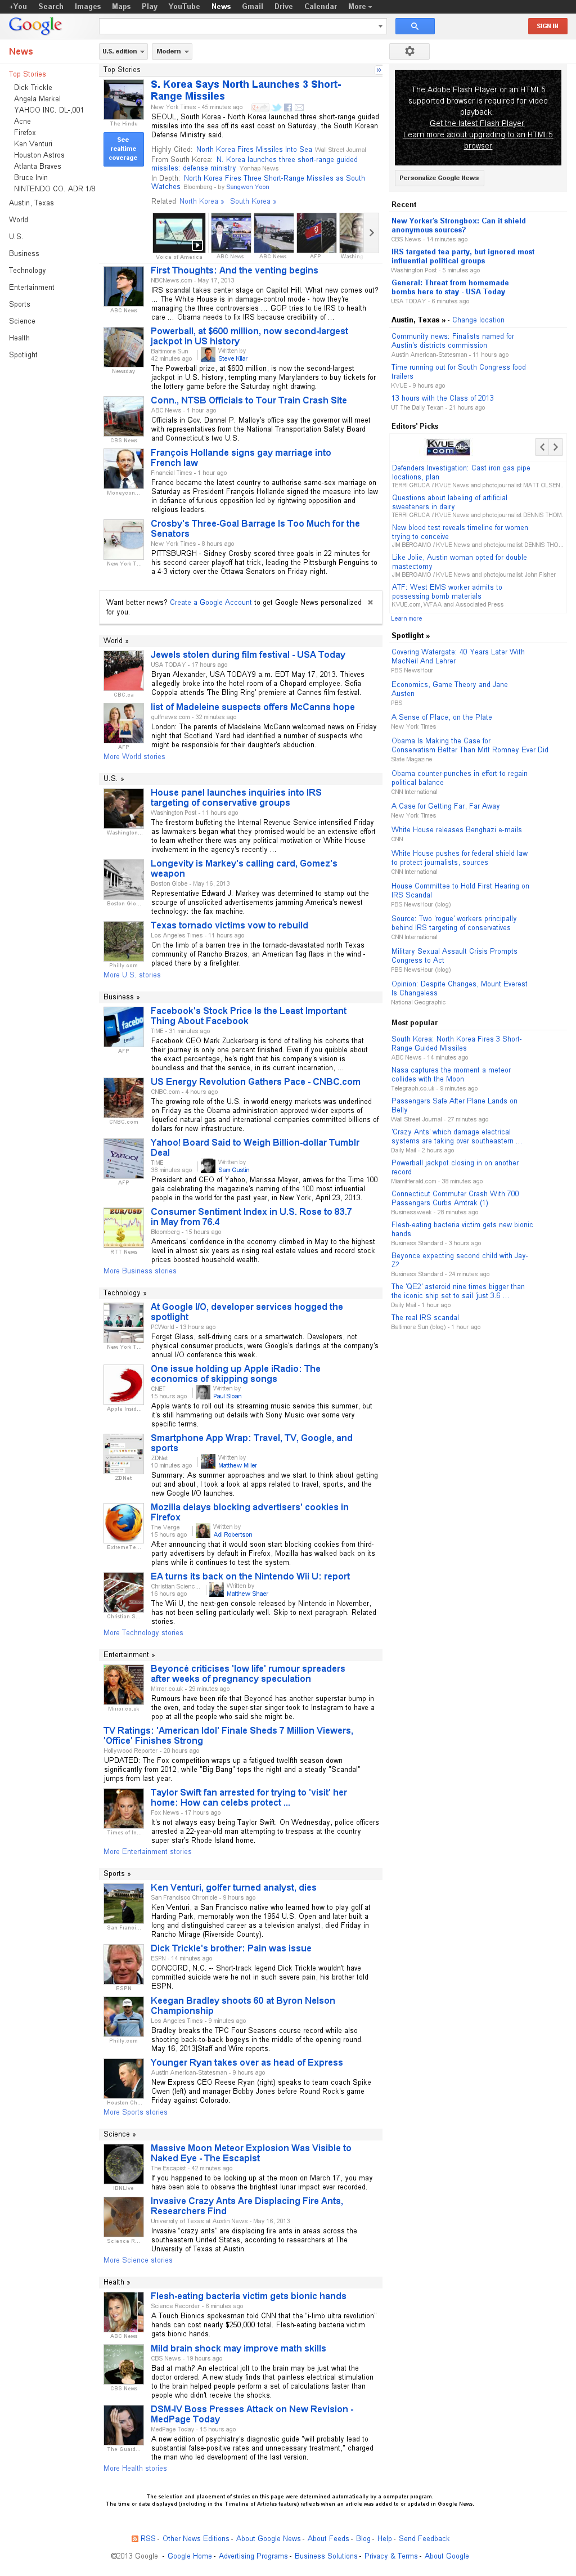 Google News at Saturday May 18, 2013, 1:08 p.m. UTC